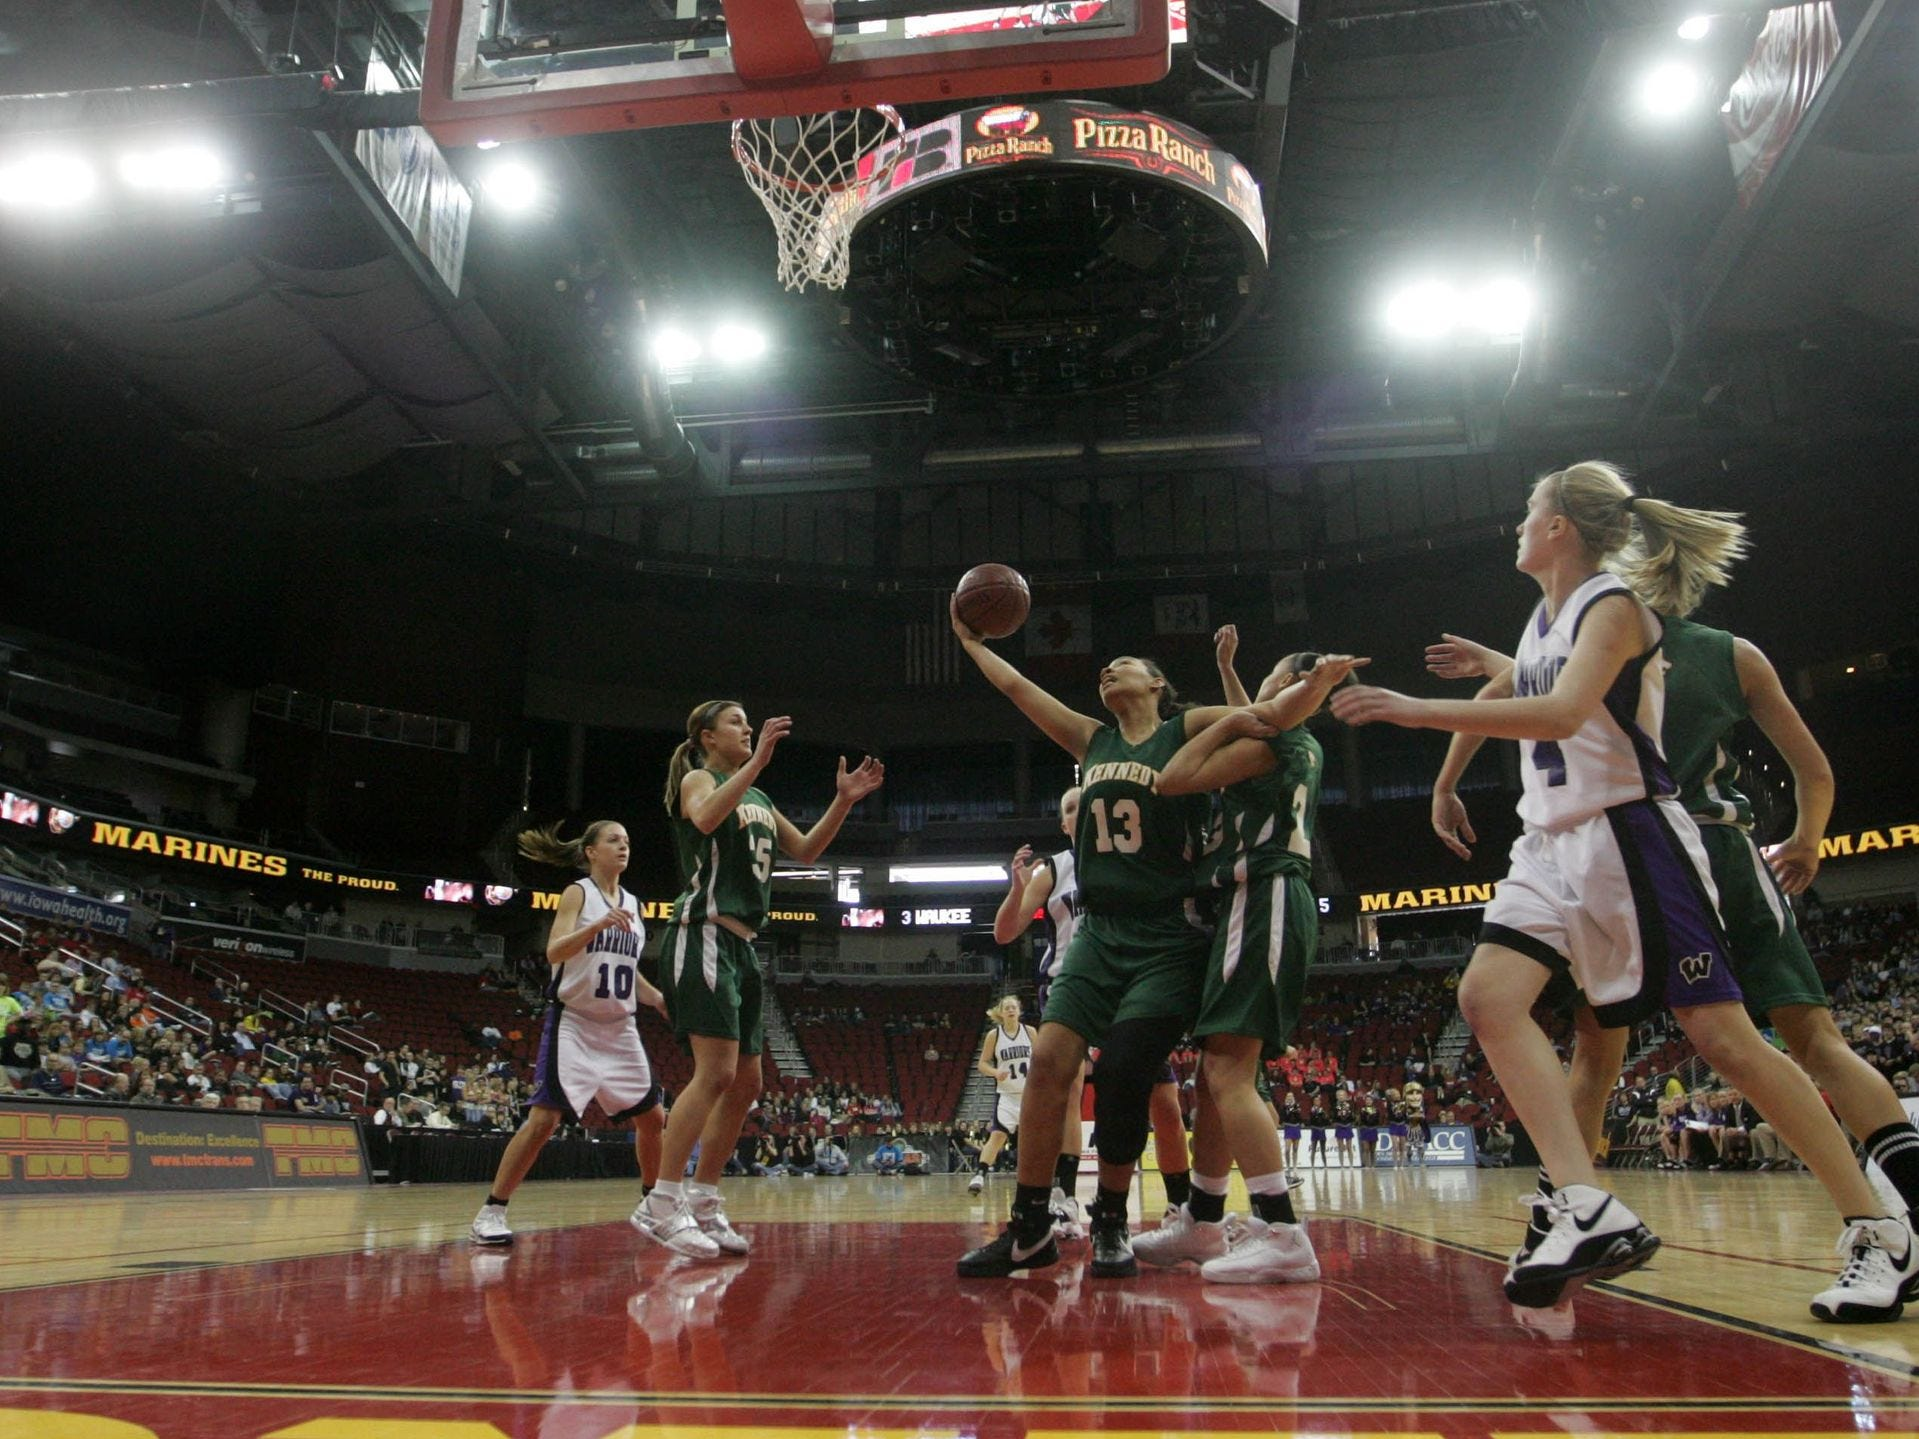 2009: Cedar Rapids Kennedy's Jade Rogers gets a rebound under the Waukee basket in their 4A quarterfinal game at the state girls' basketball tournament. Register file photo